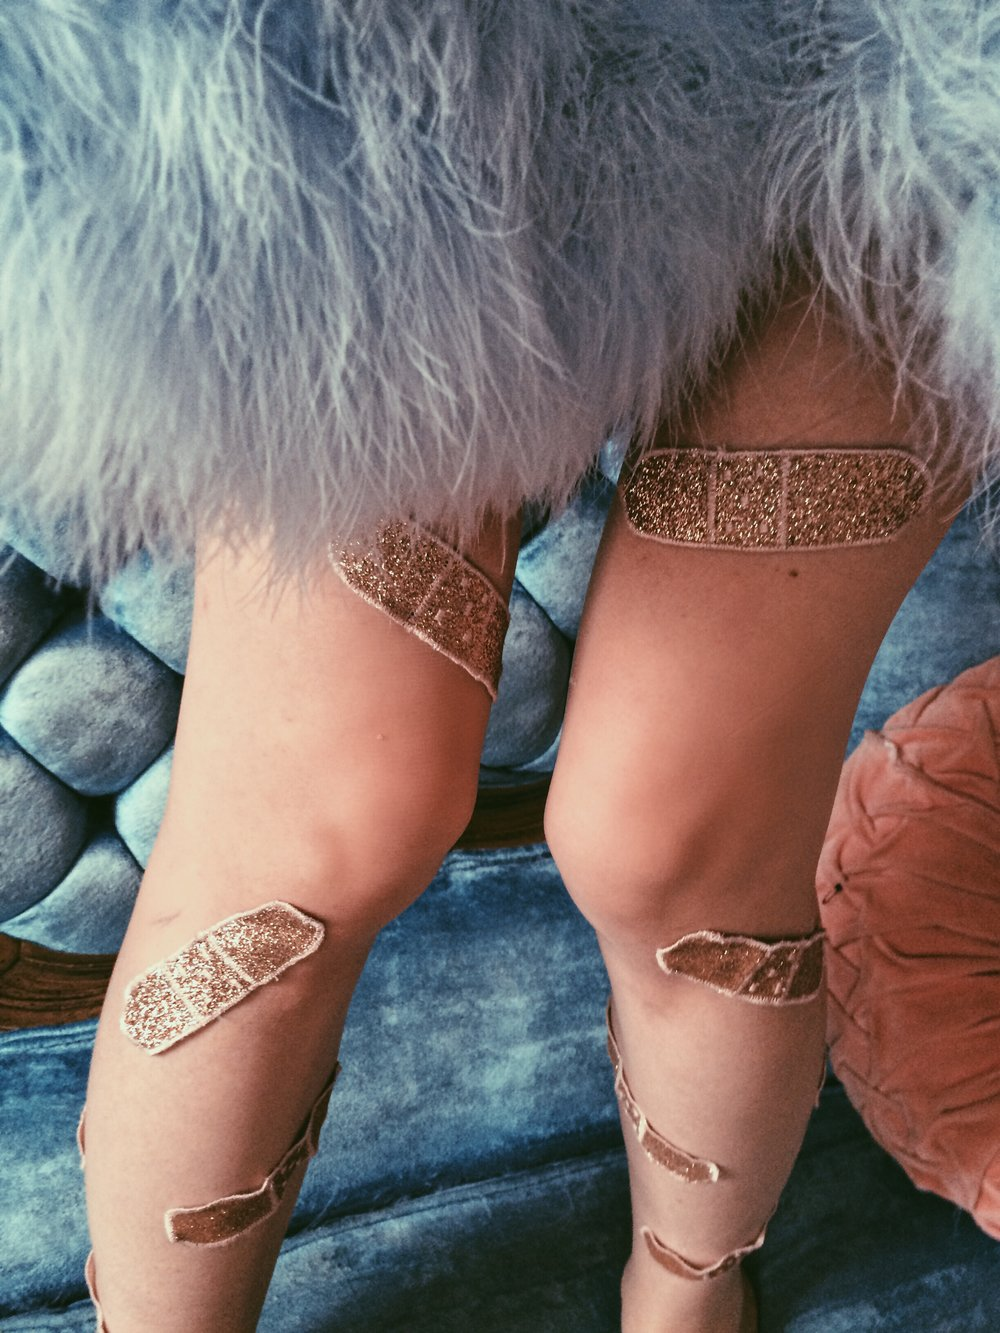 2015 Bandaid Applique Stockings created for Melanie Martinez